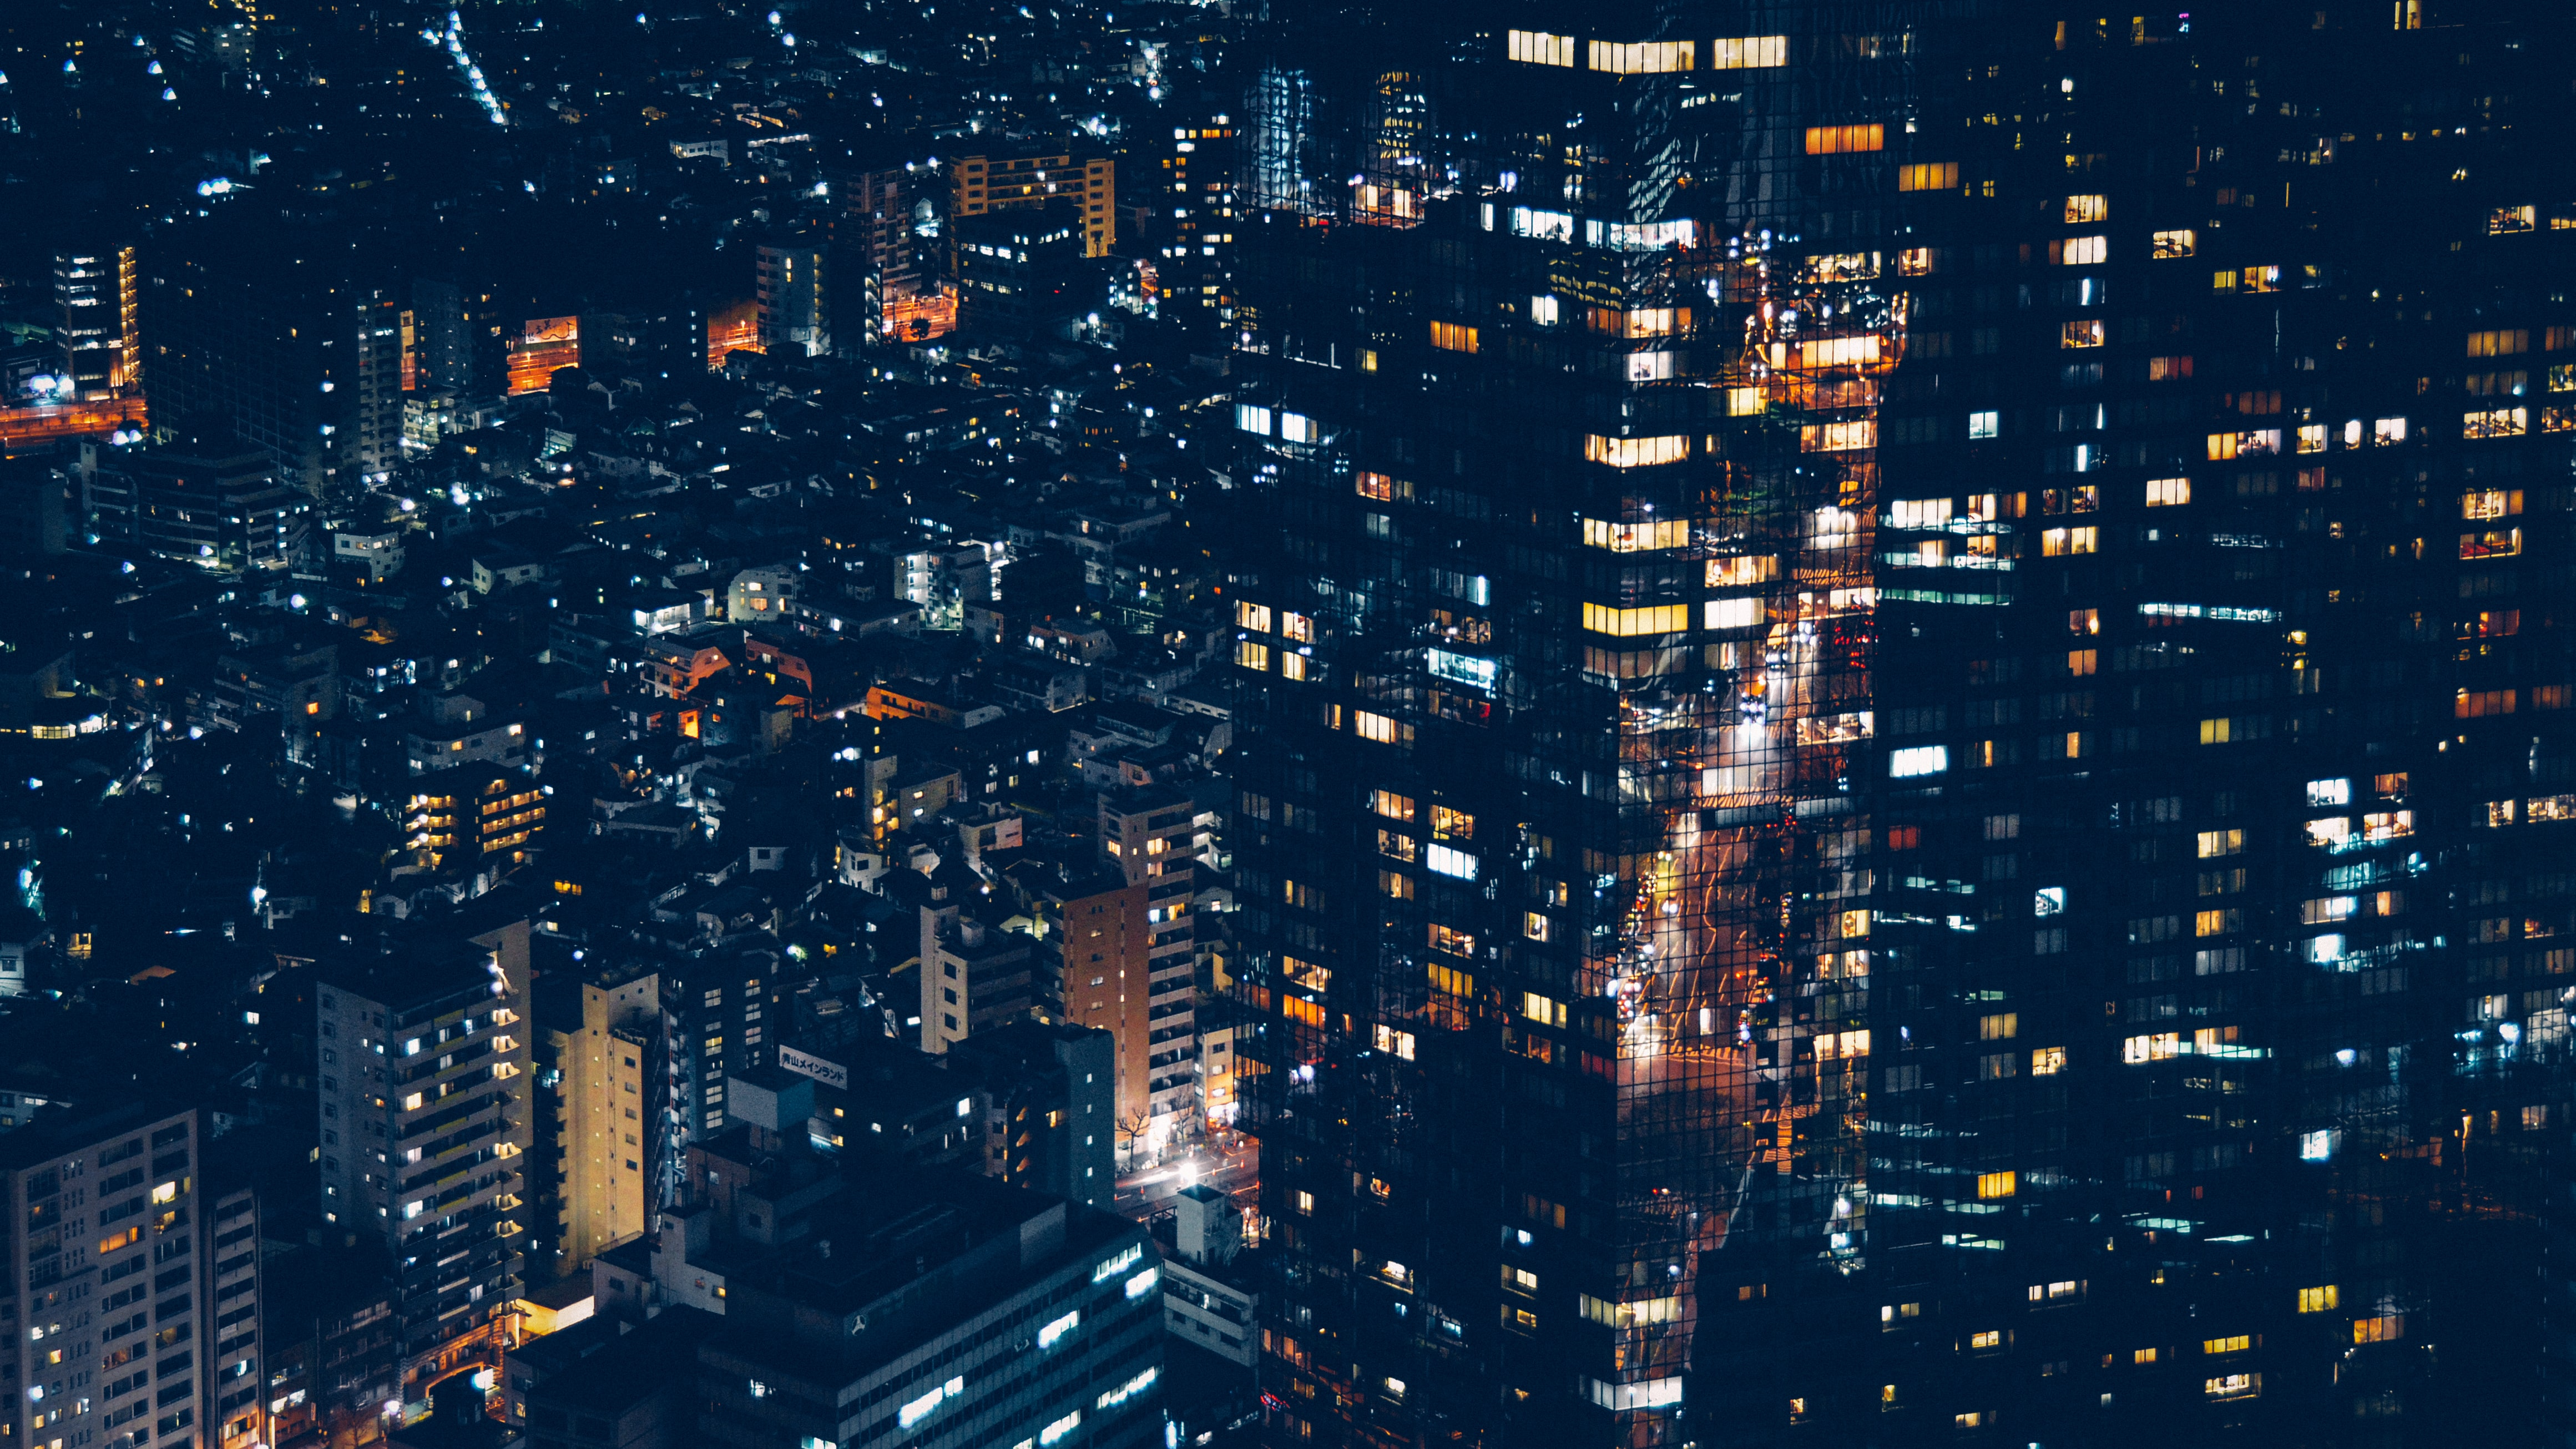 The skyline of Tokyo lit up at night